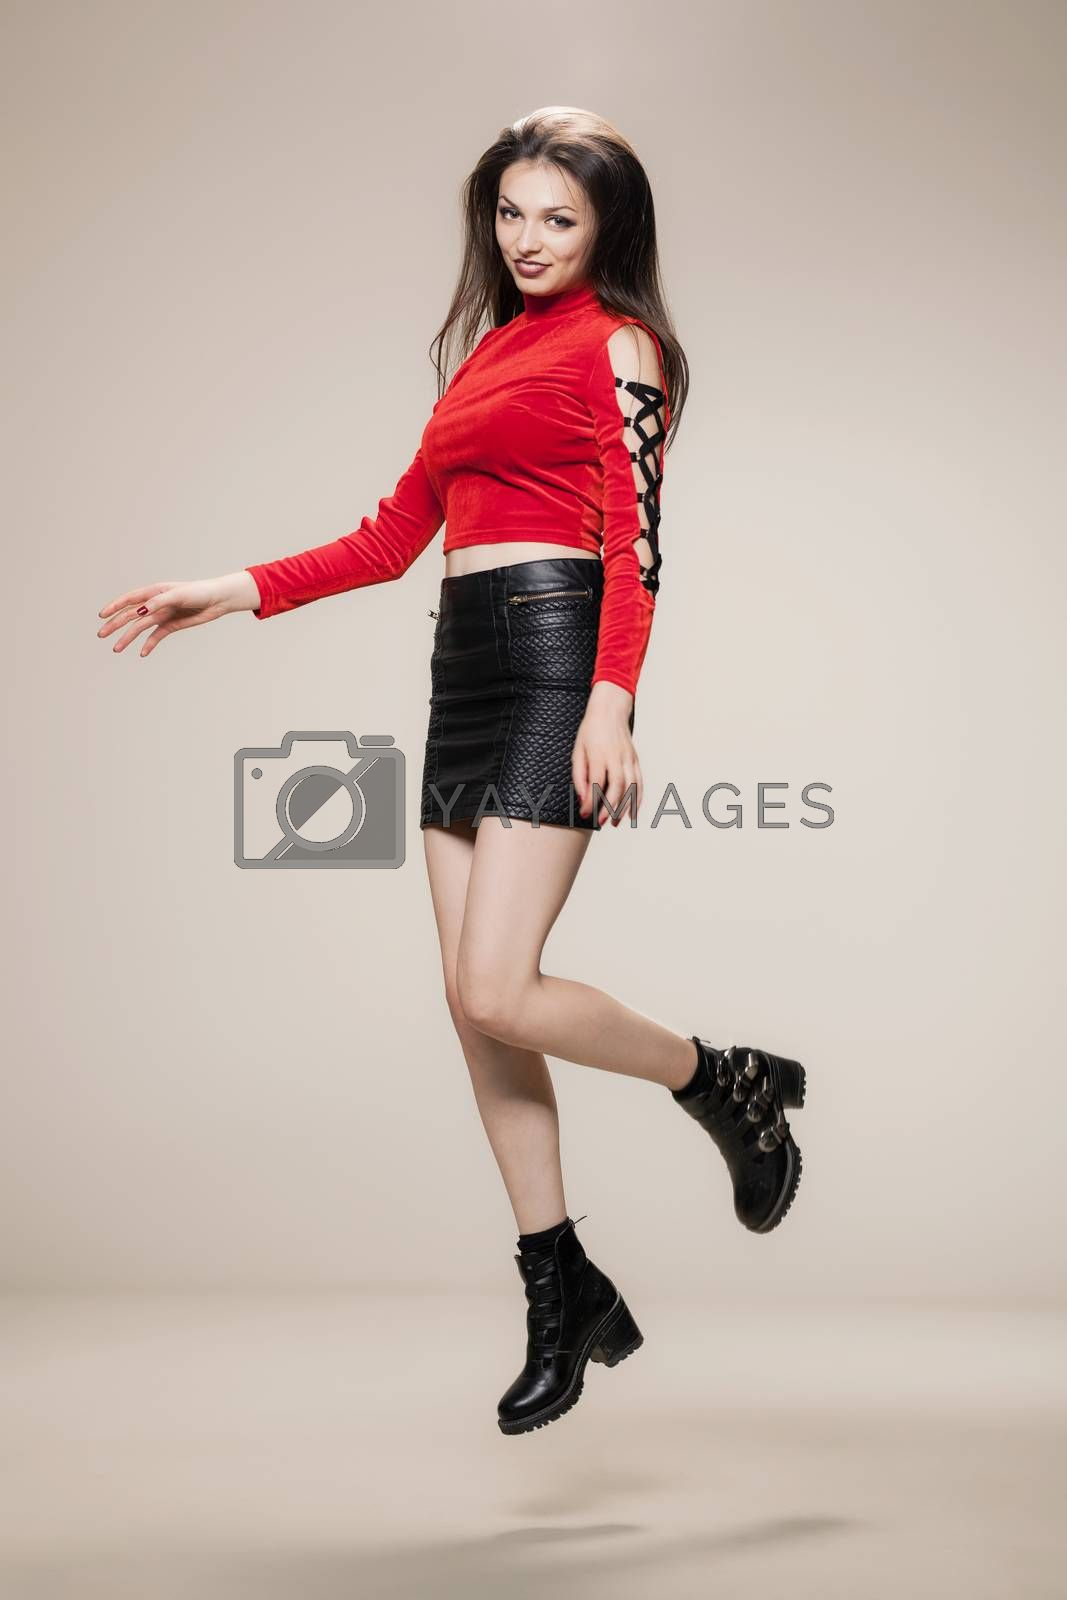 jumping girl in red shirt, short black dress and boots